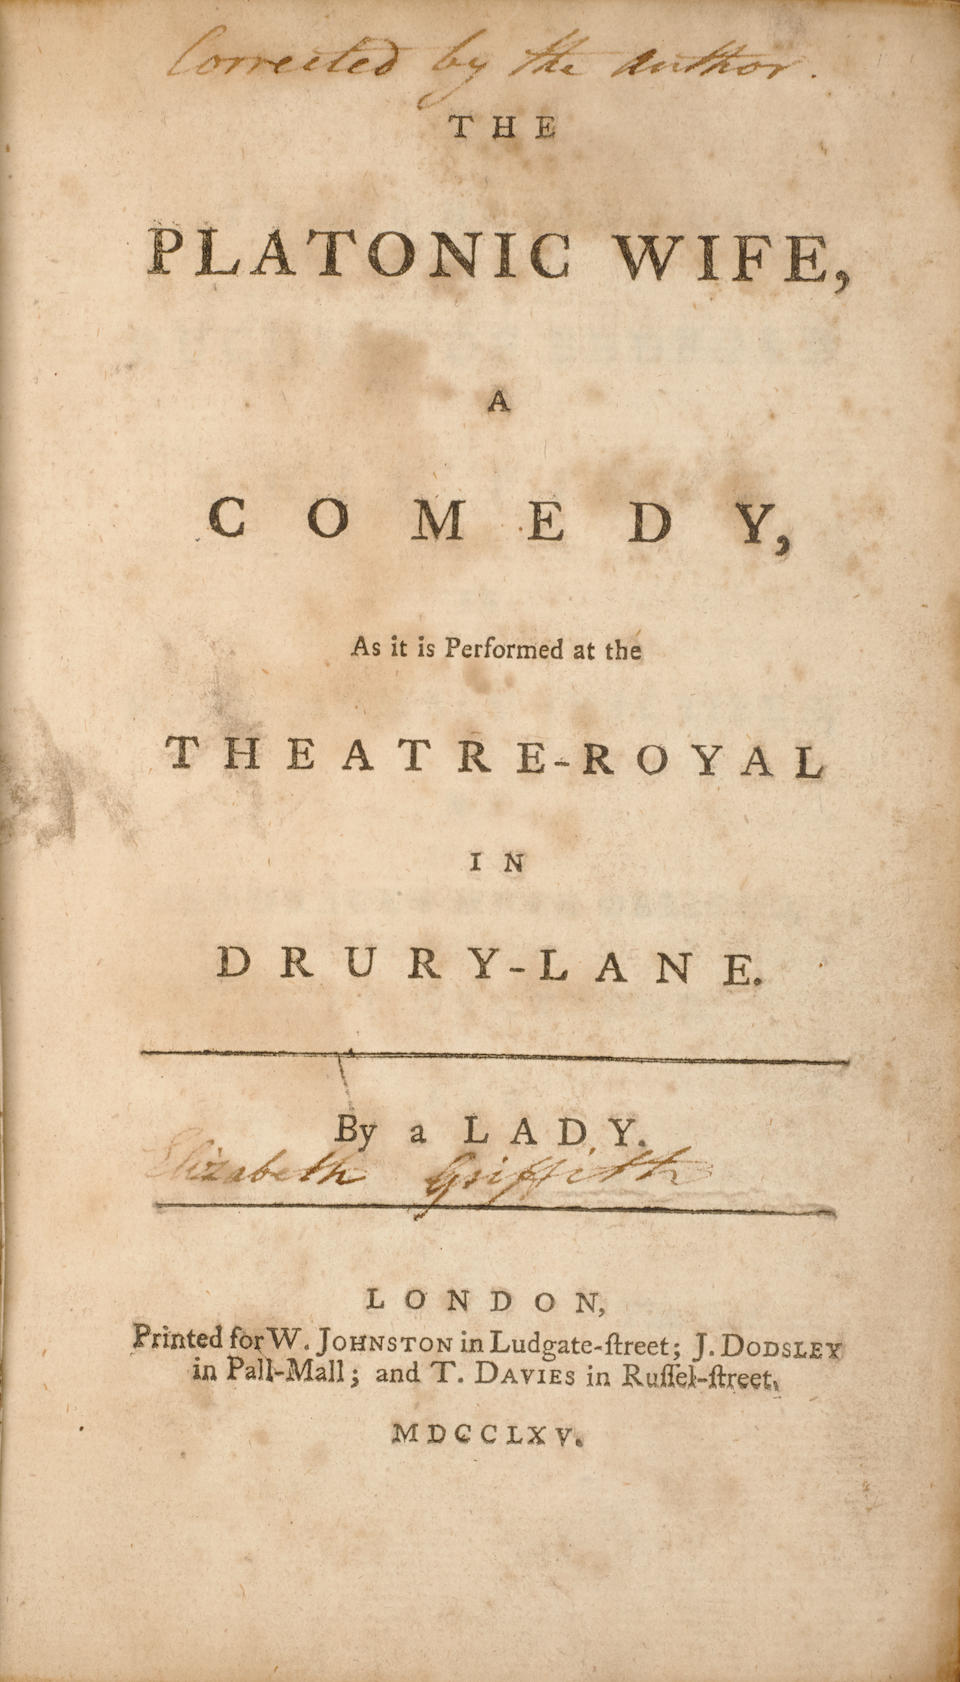 [GRIFFITH, ELIZABETH. 1727-1793.] The Platonic Wife, a Comedy. London: W. Johnston, J. Dodsley and T. Davies, 1765.